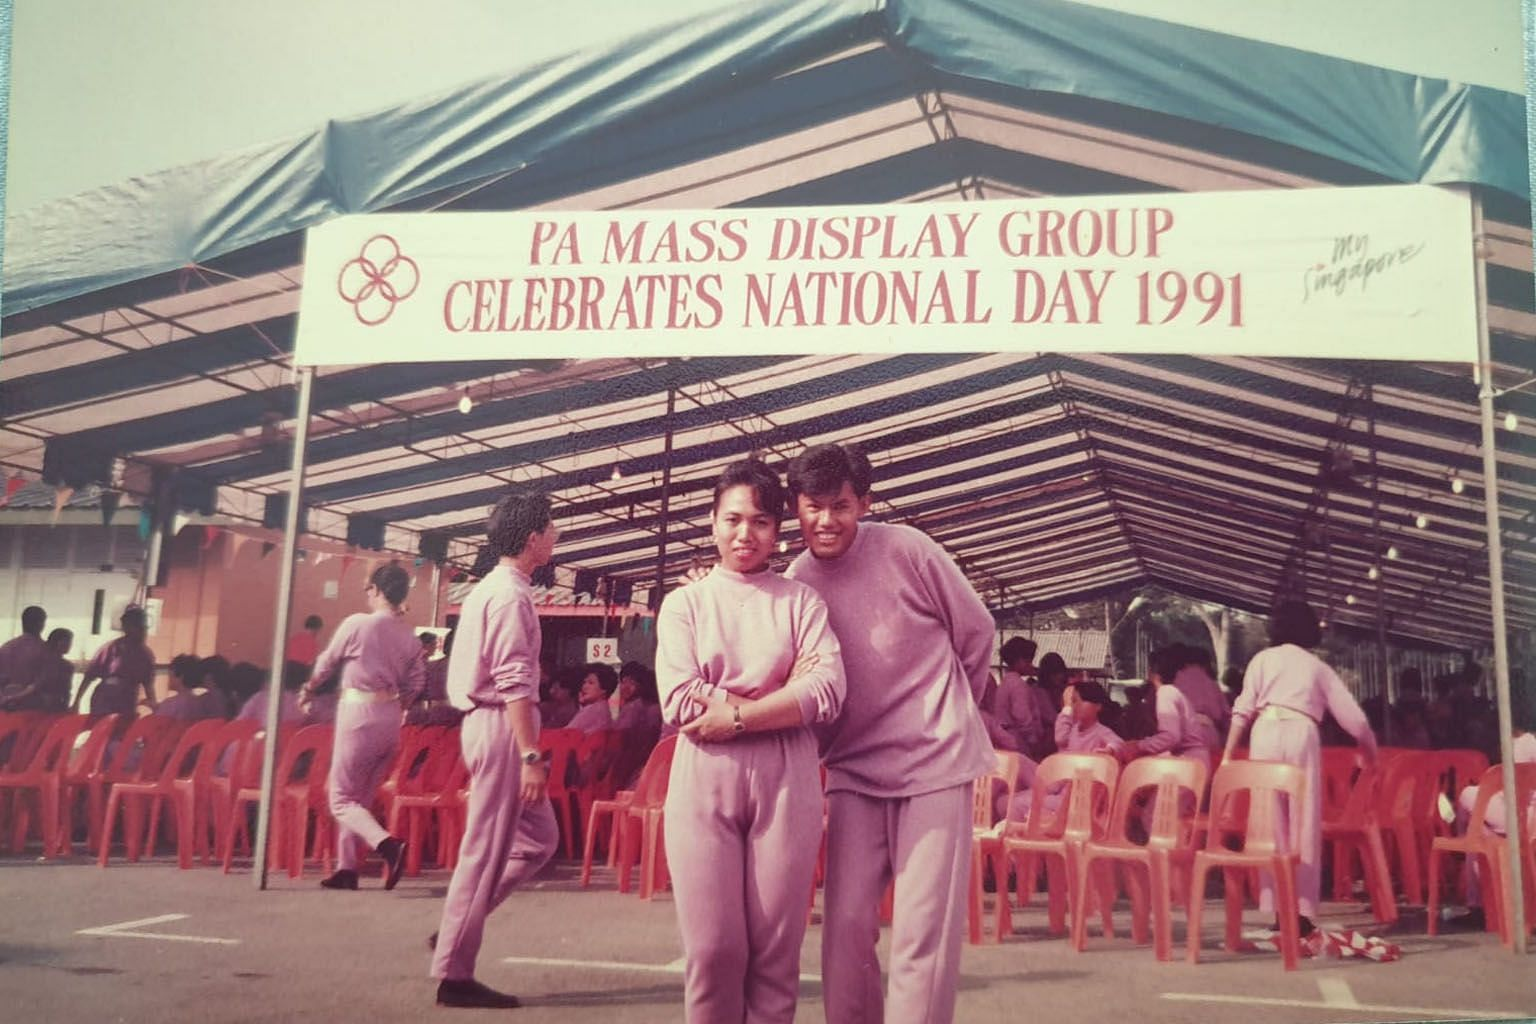 Mr Clarence Chan (right), with a fellow participant from the People's Association at the former PA headquarters opposite the old National Stadium in Kallang, during rehearsals for NDP 1991.